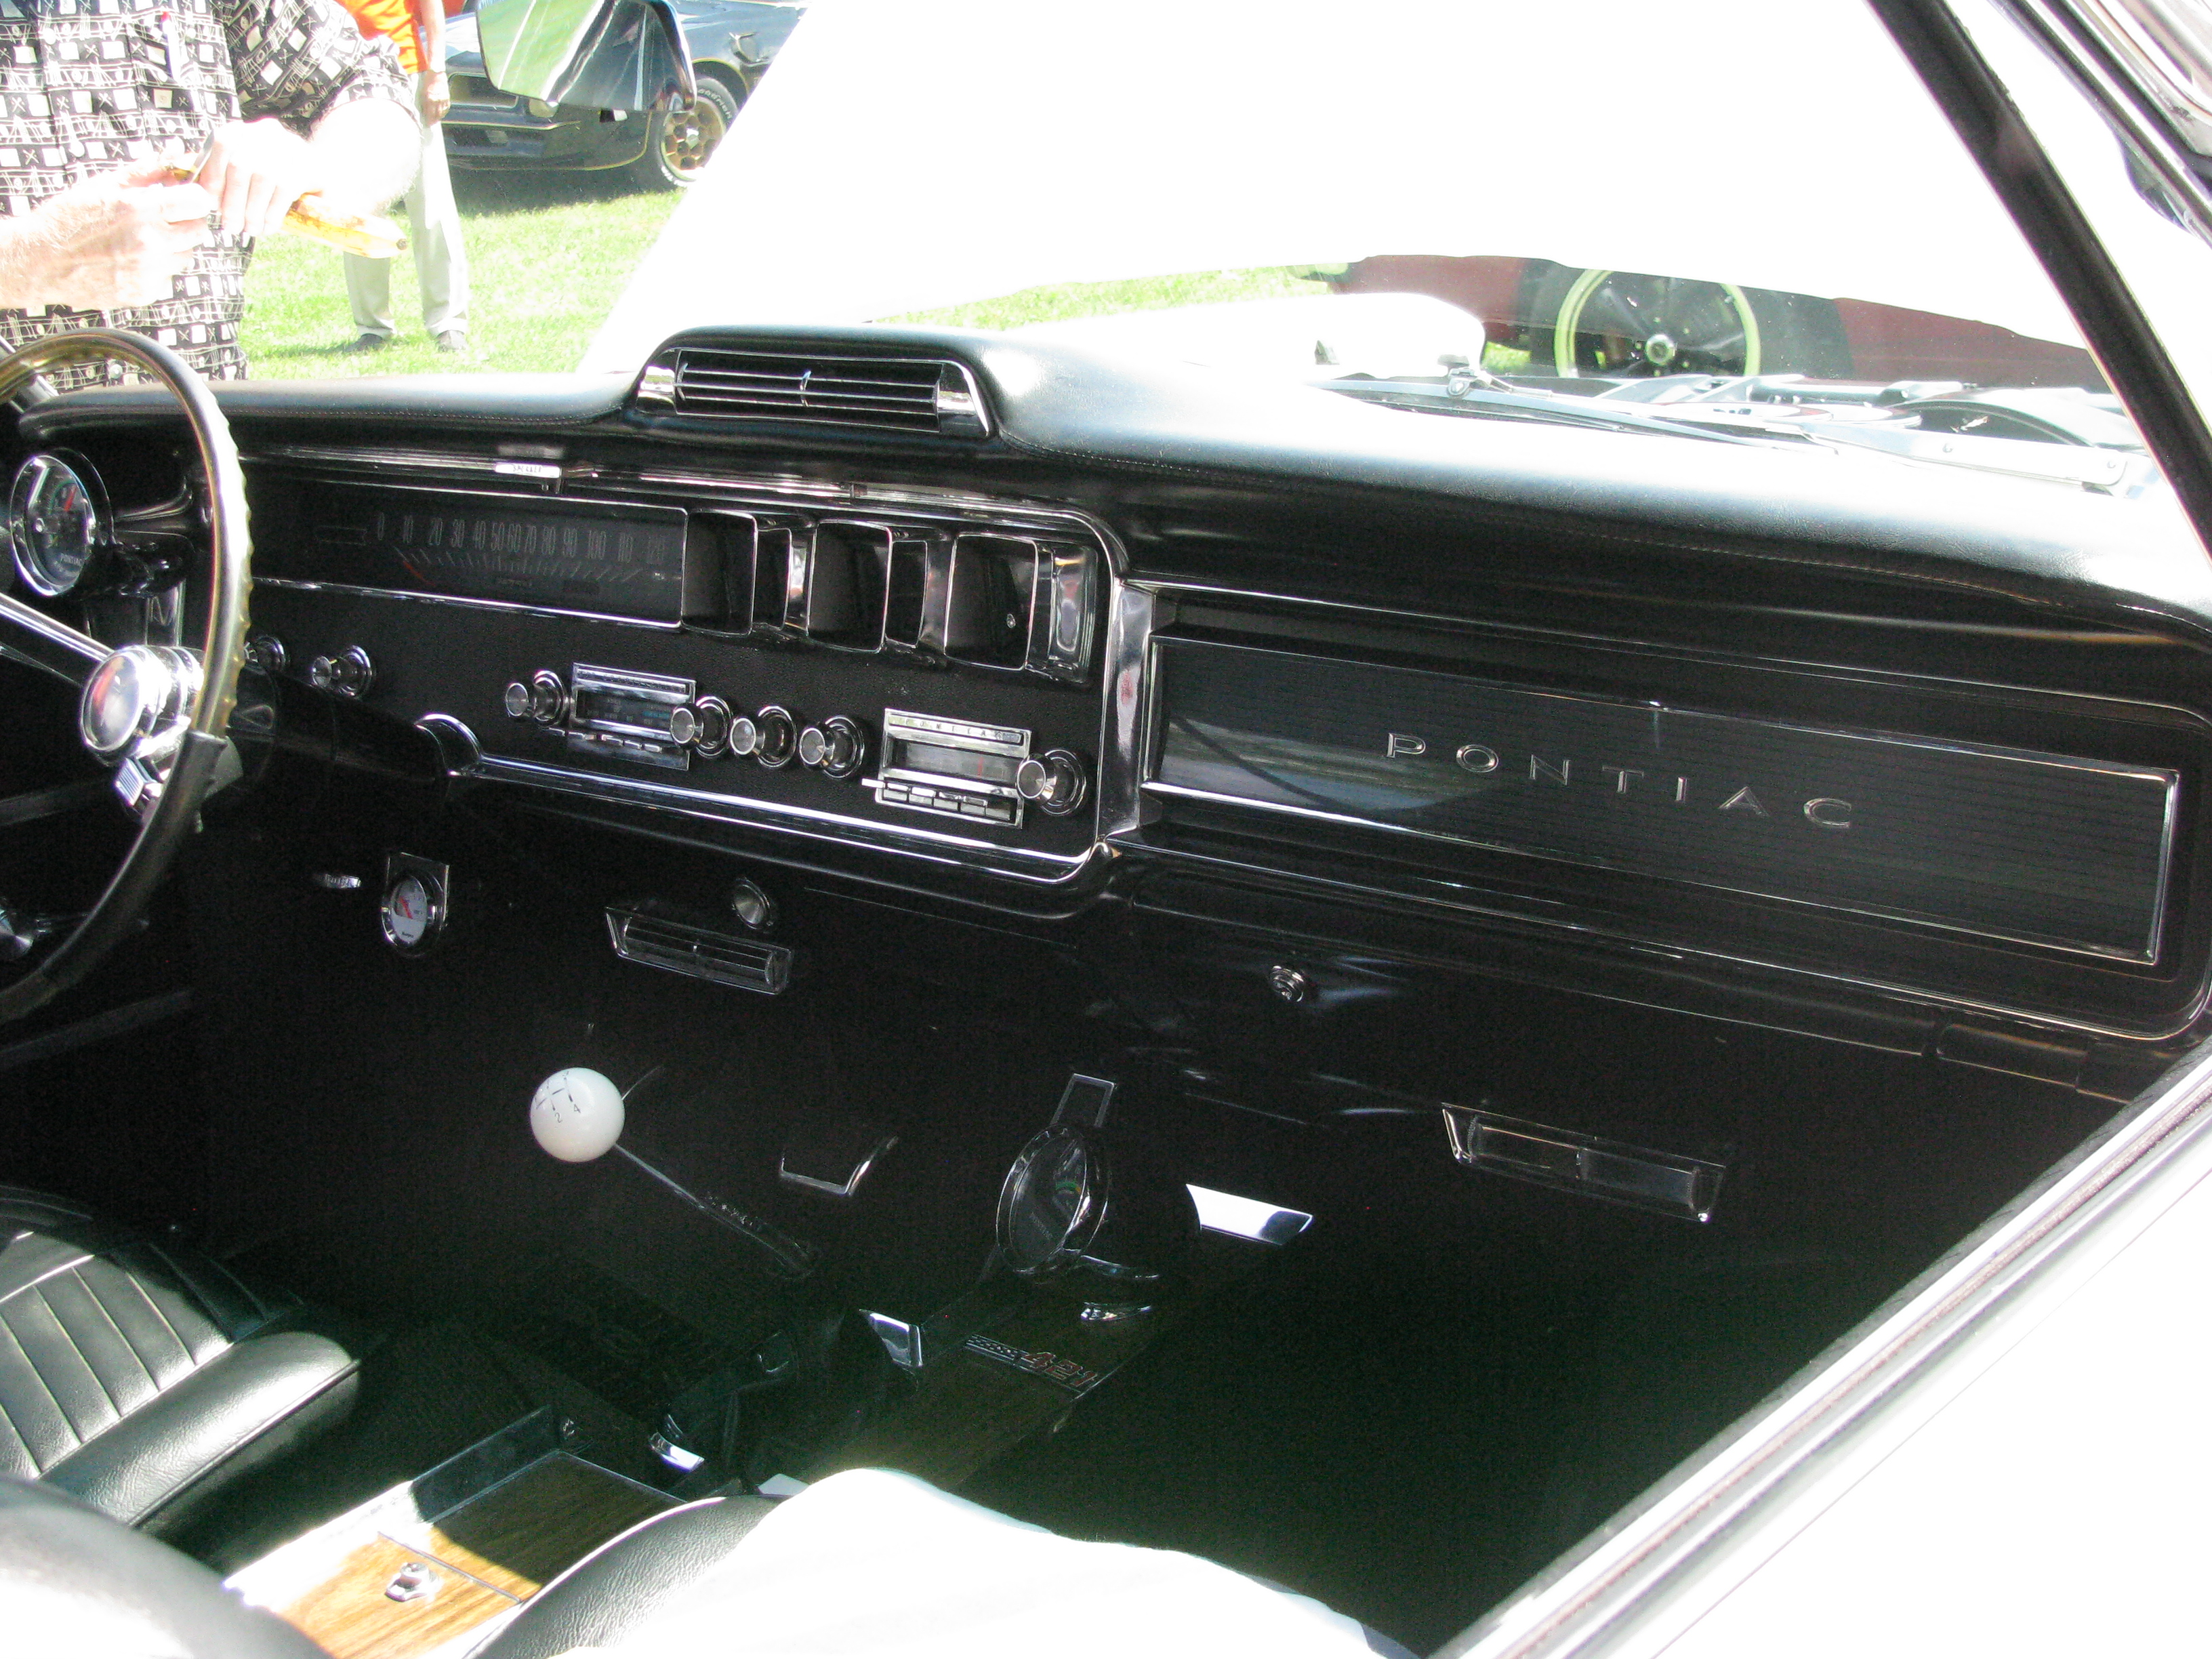 View photo of 1966 Pontiac 2+2 Dashboard - 3,567KB